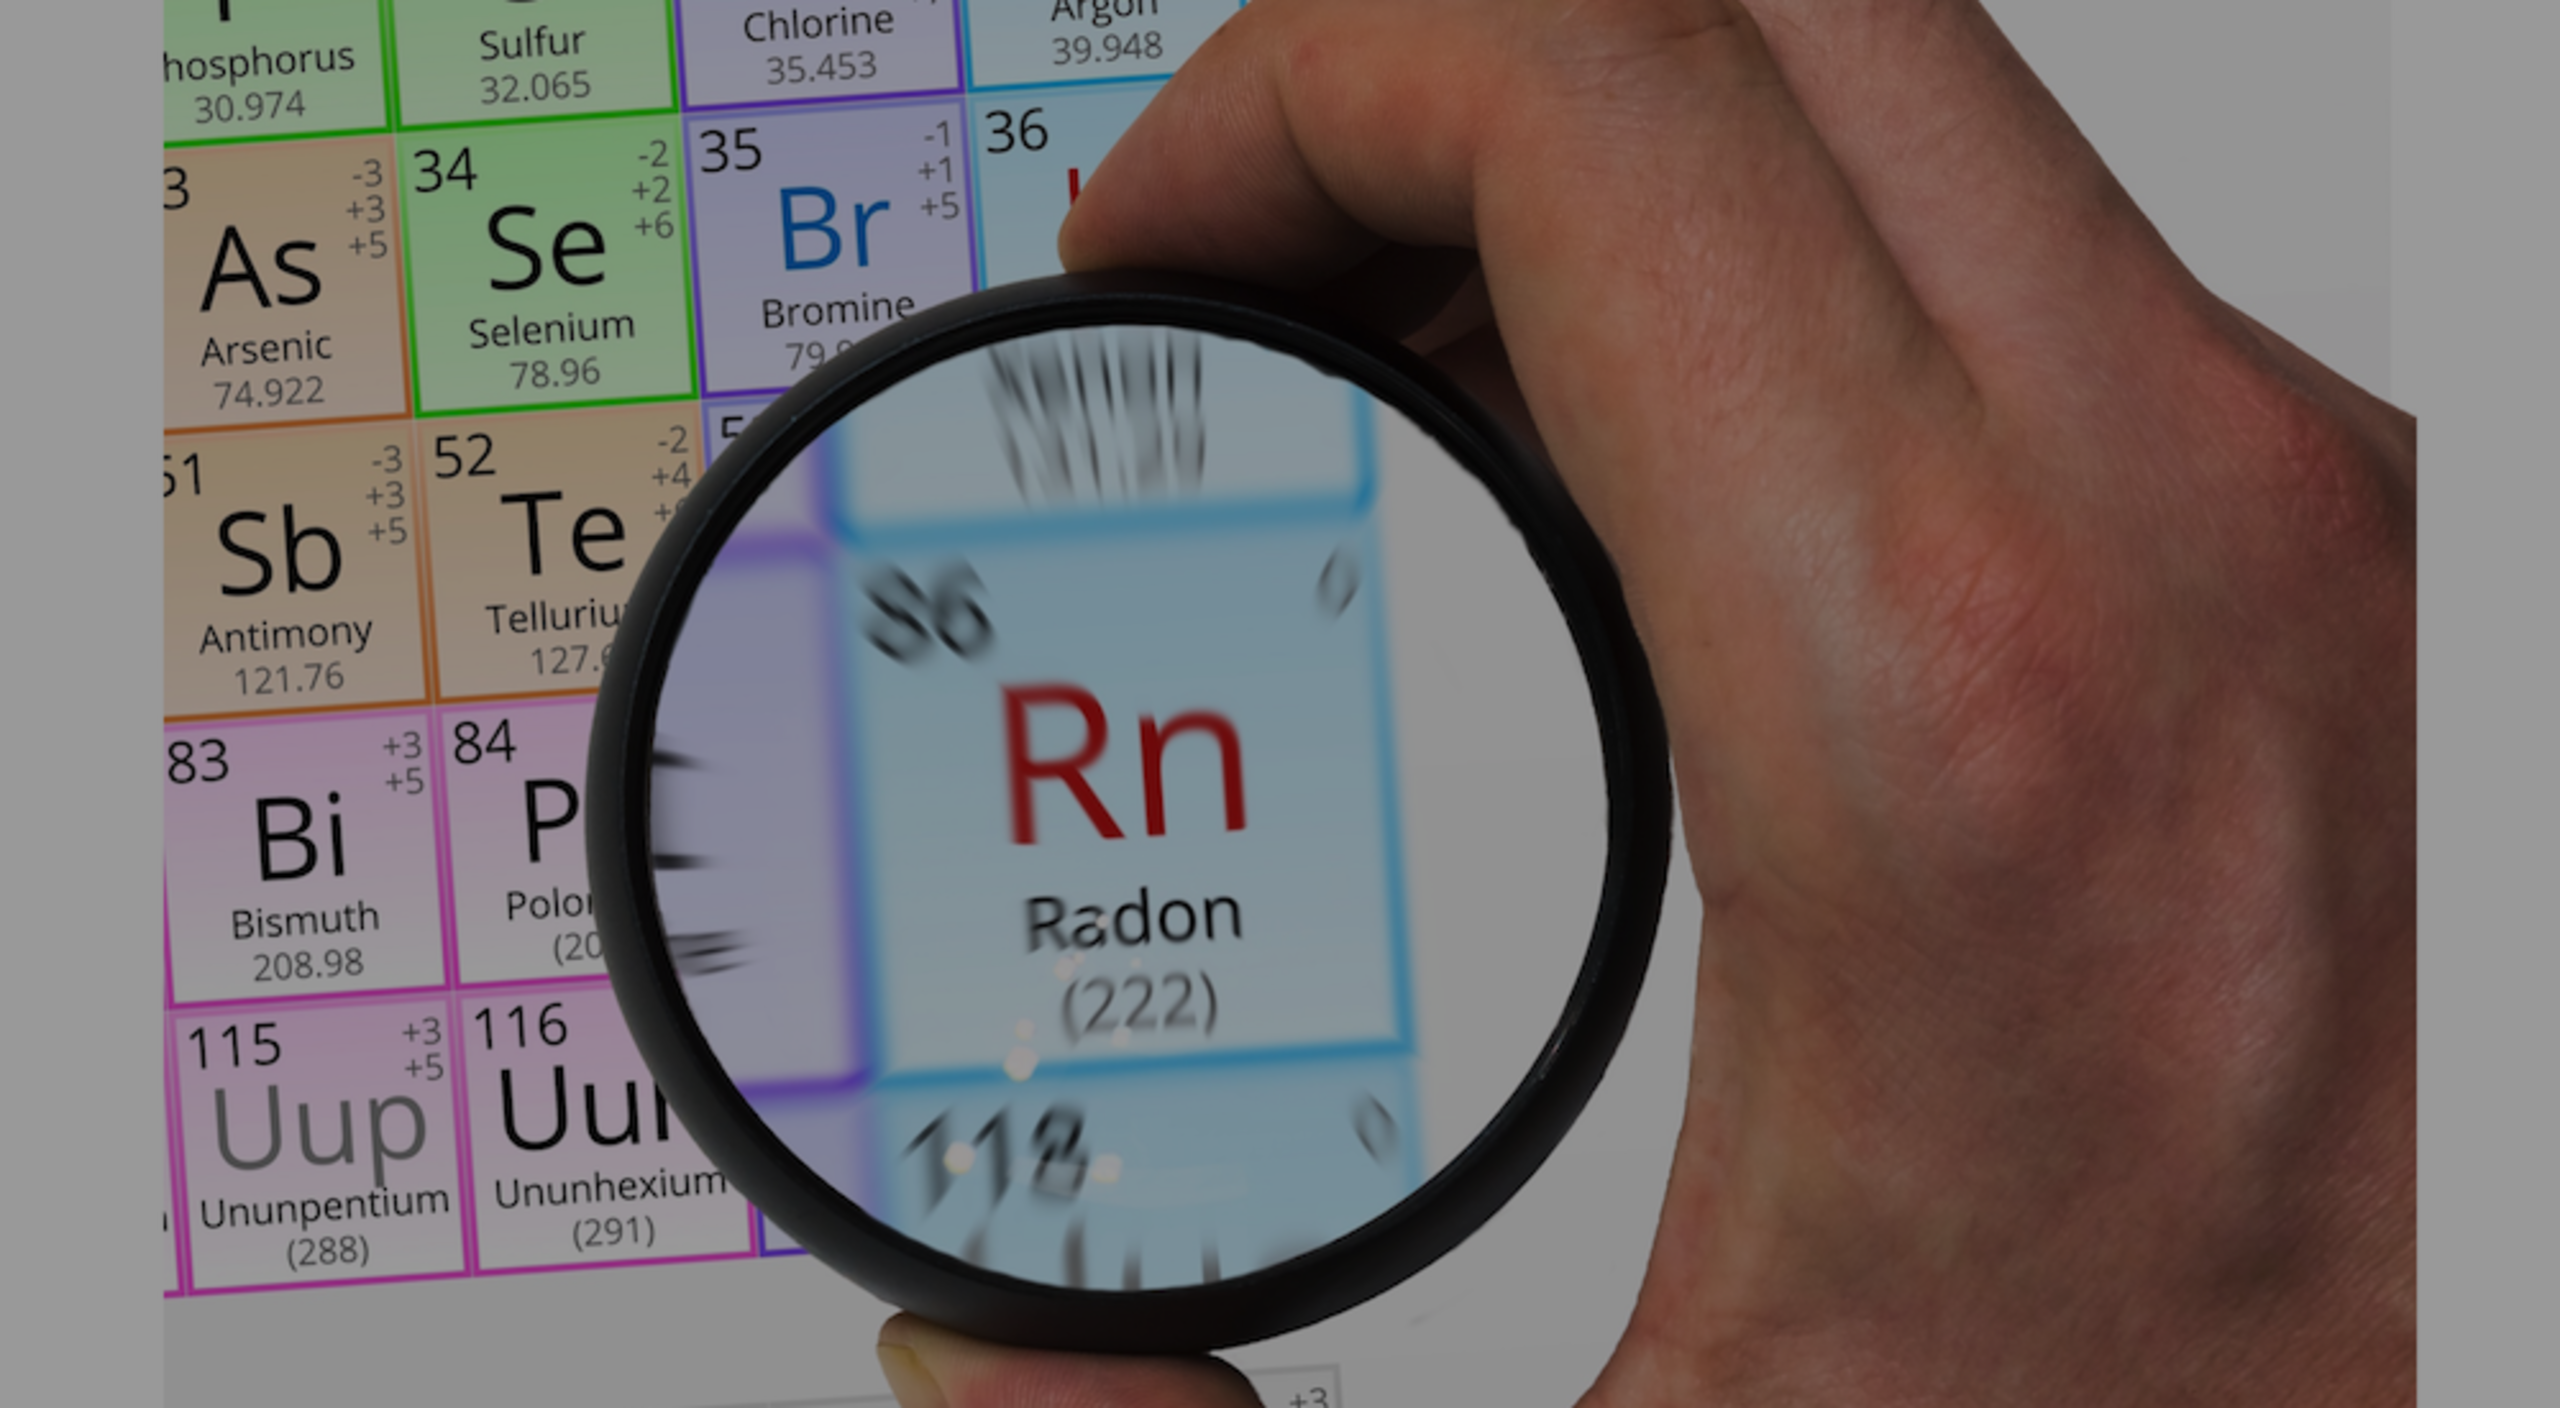 January is National Radon Awareness Month